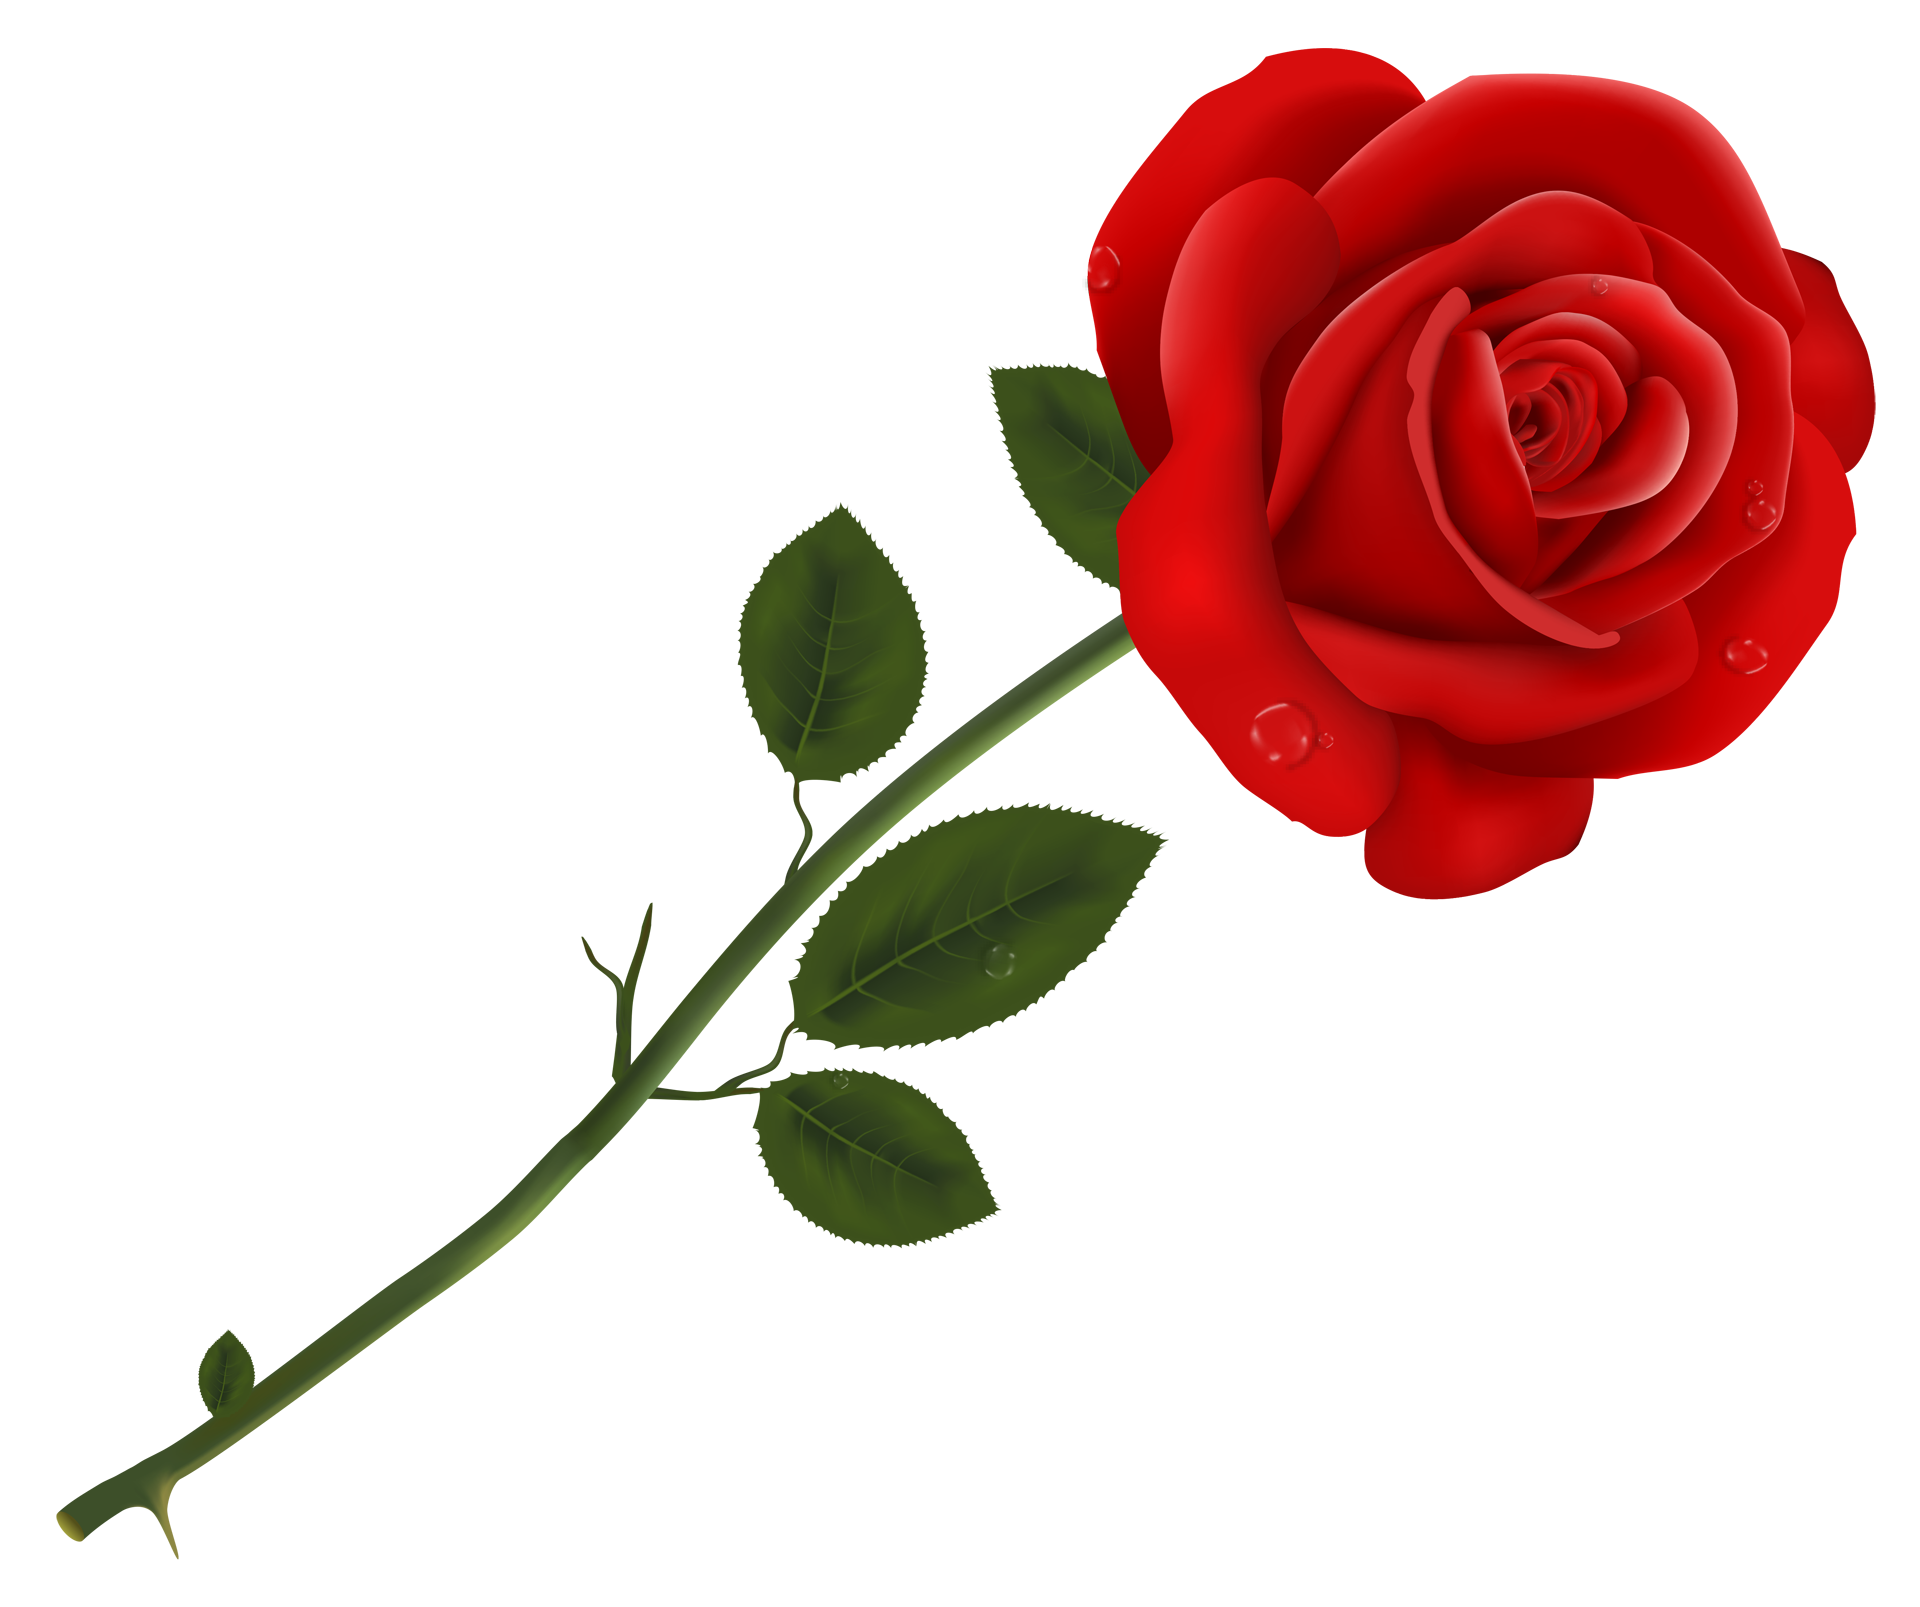 The Symbol of the Rose